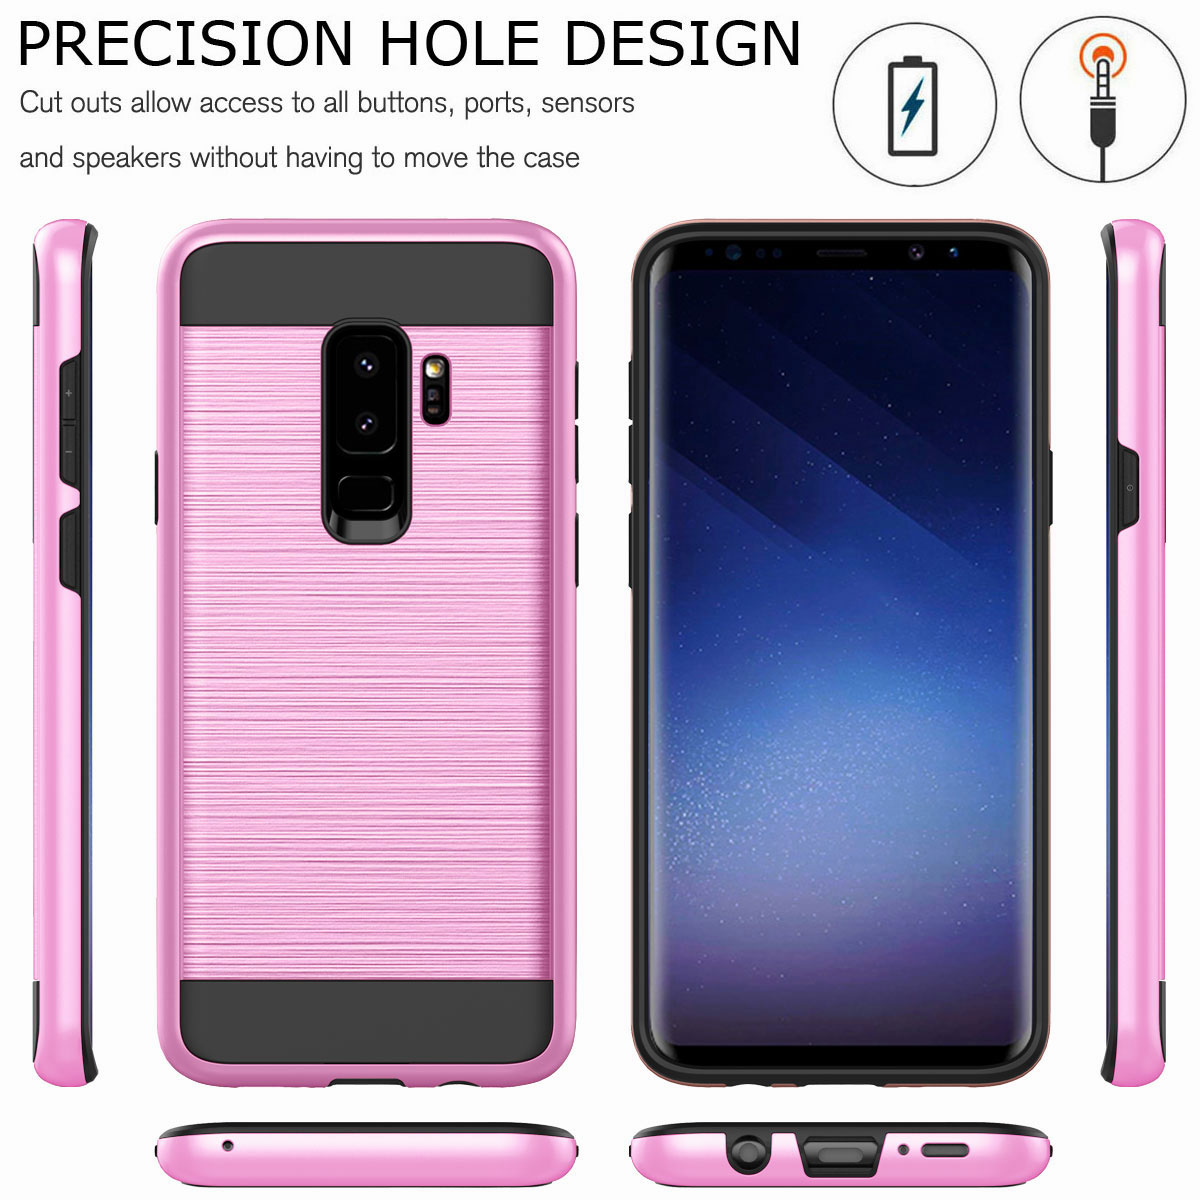 new product f9eaf ea12c Details about For Samsung Galaxy J6 J4 J8 2018 Shockproof Rugged Protective  Phone Case Cover